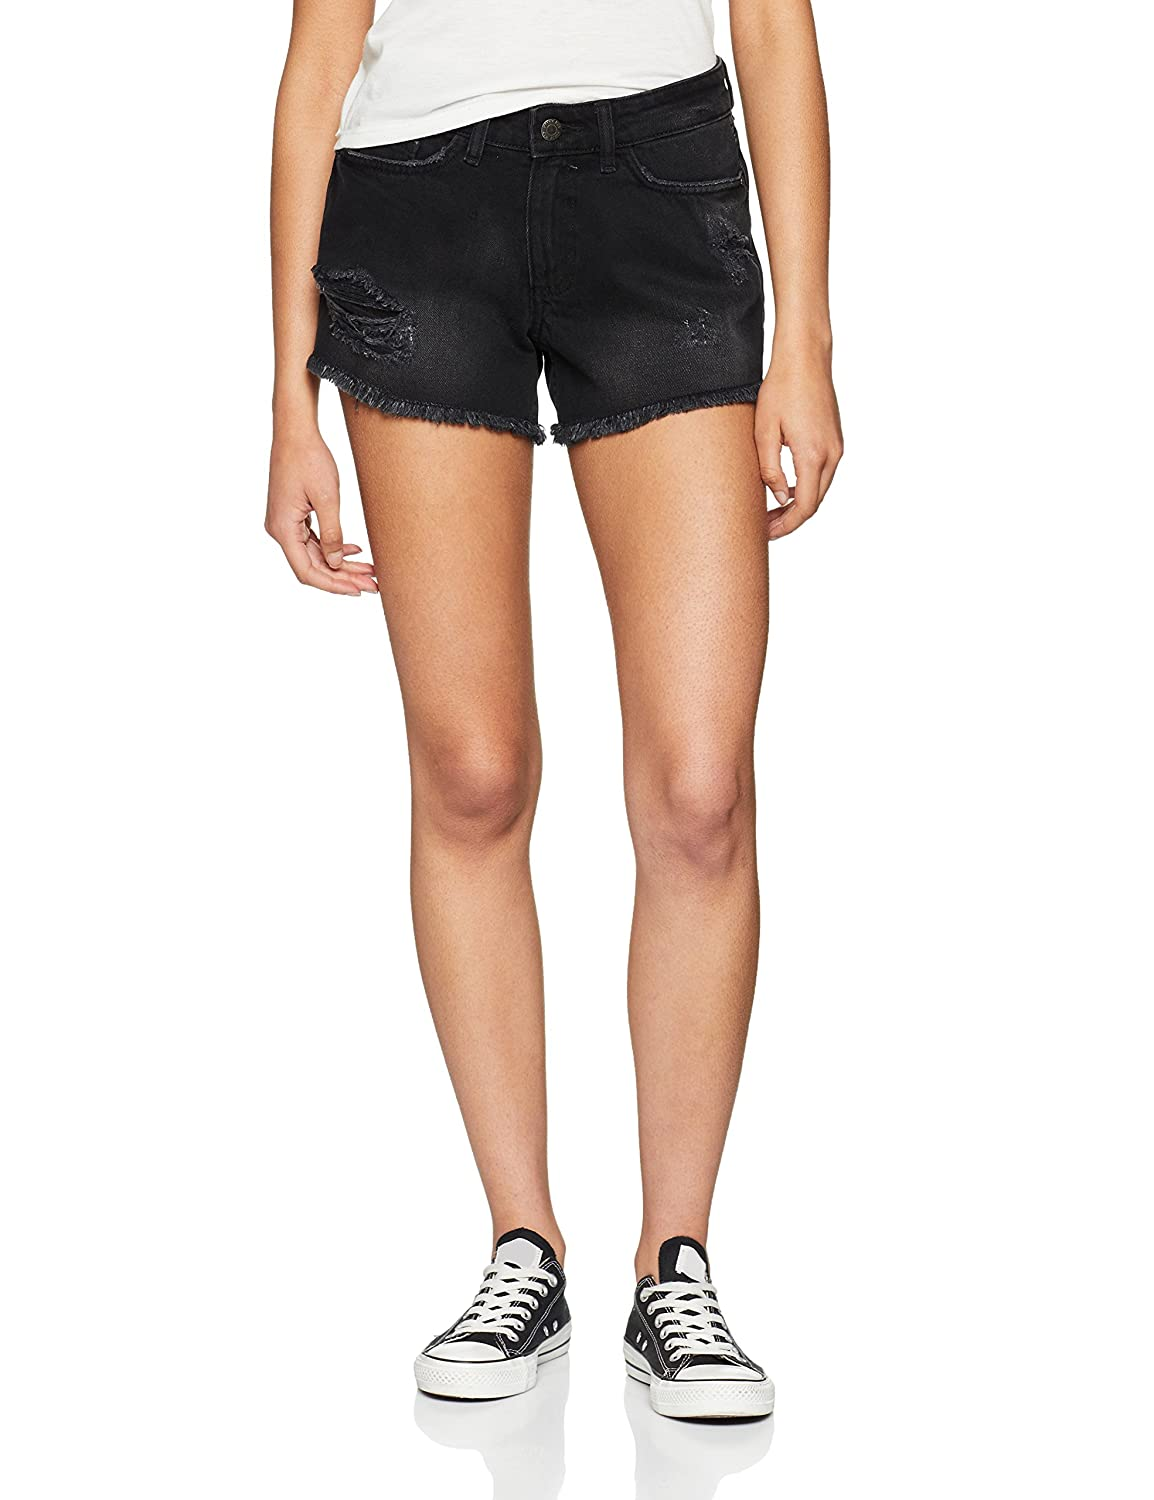 Noisy May Nmfran Nw Raw Edge Black Shorts Noos, Pantaloncini Donna 27002018